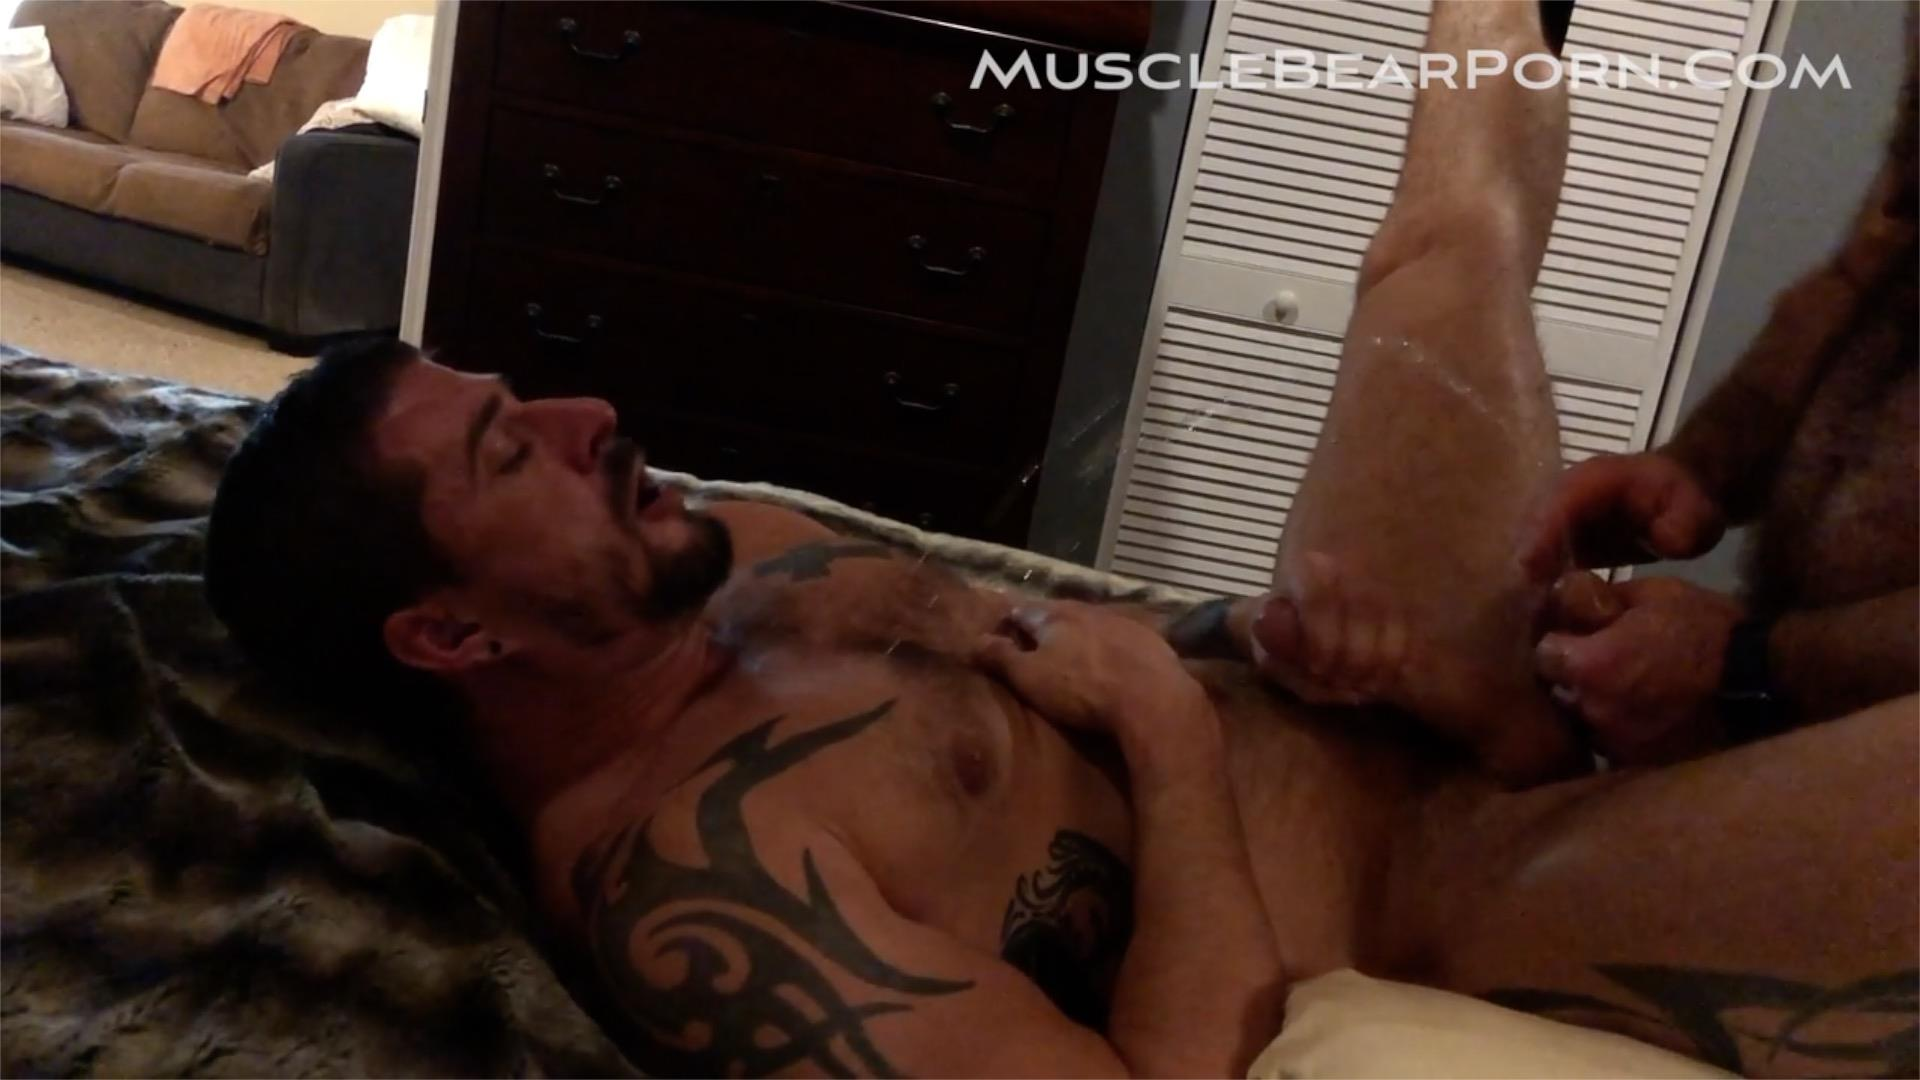 Muscle-Bear-Porn-Sean-Maygers-and-Will-Angell-Bearback-Homemade-Sex-Video-5 Sean Maygers Is Daddy Will Angell's Piss Pig